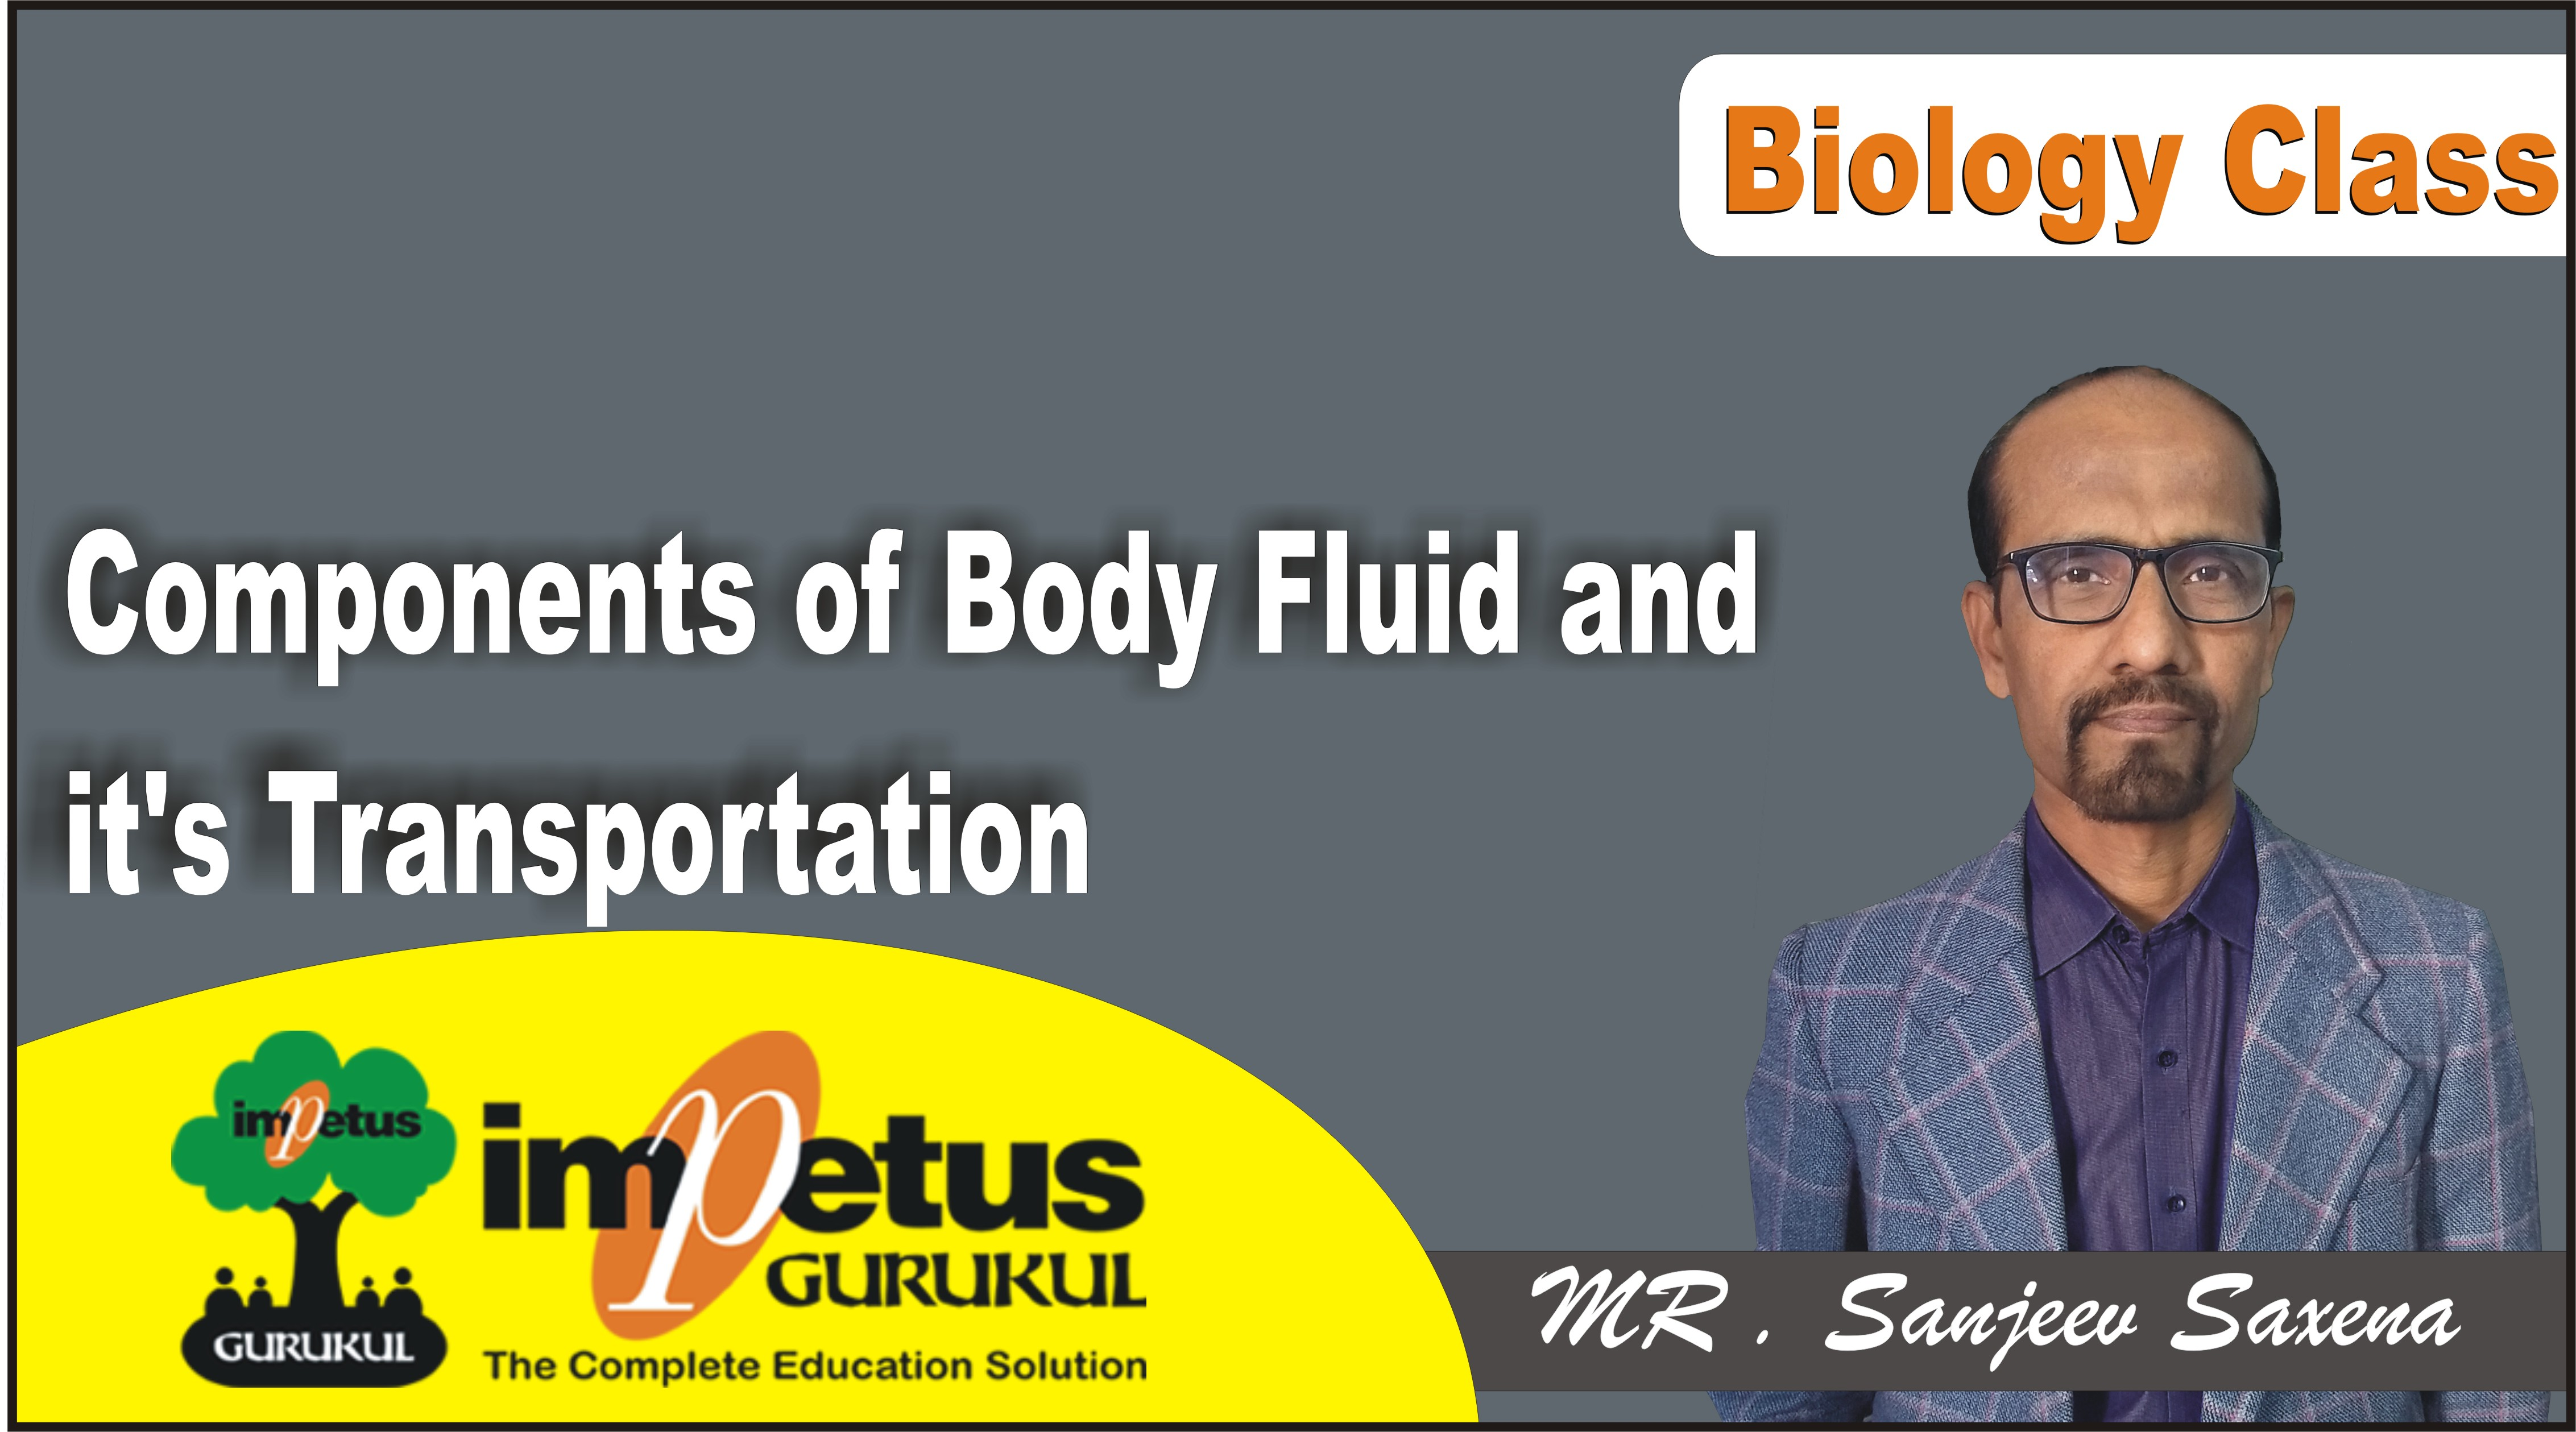 Components of Body Fluid and it's Transportation